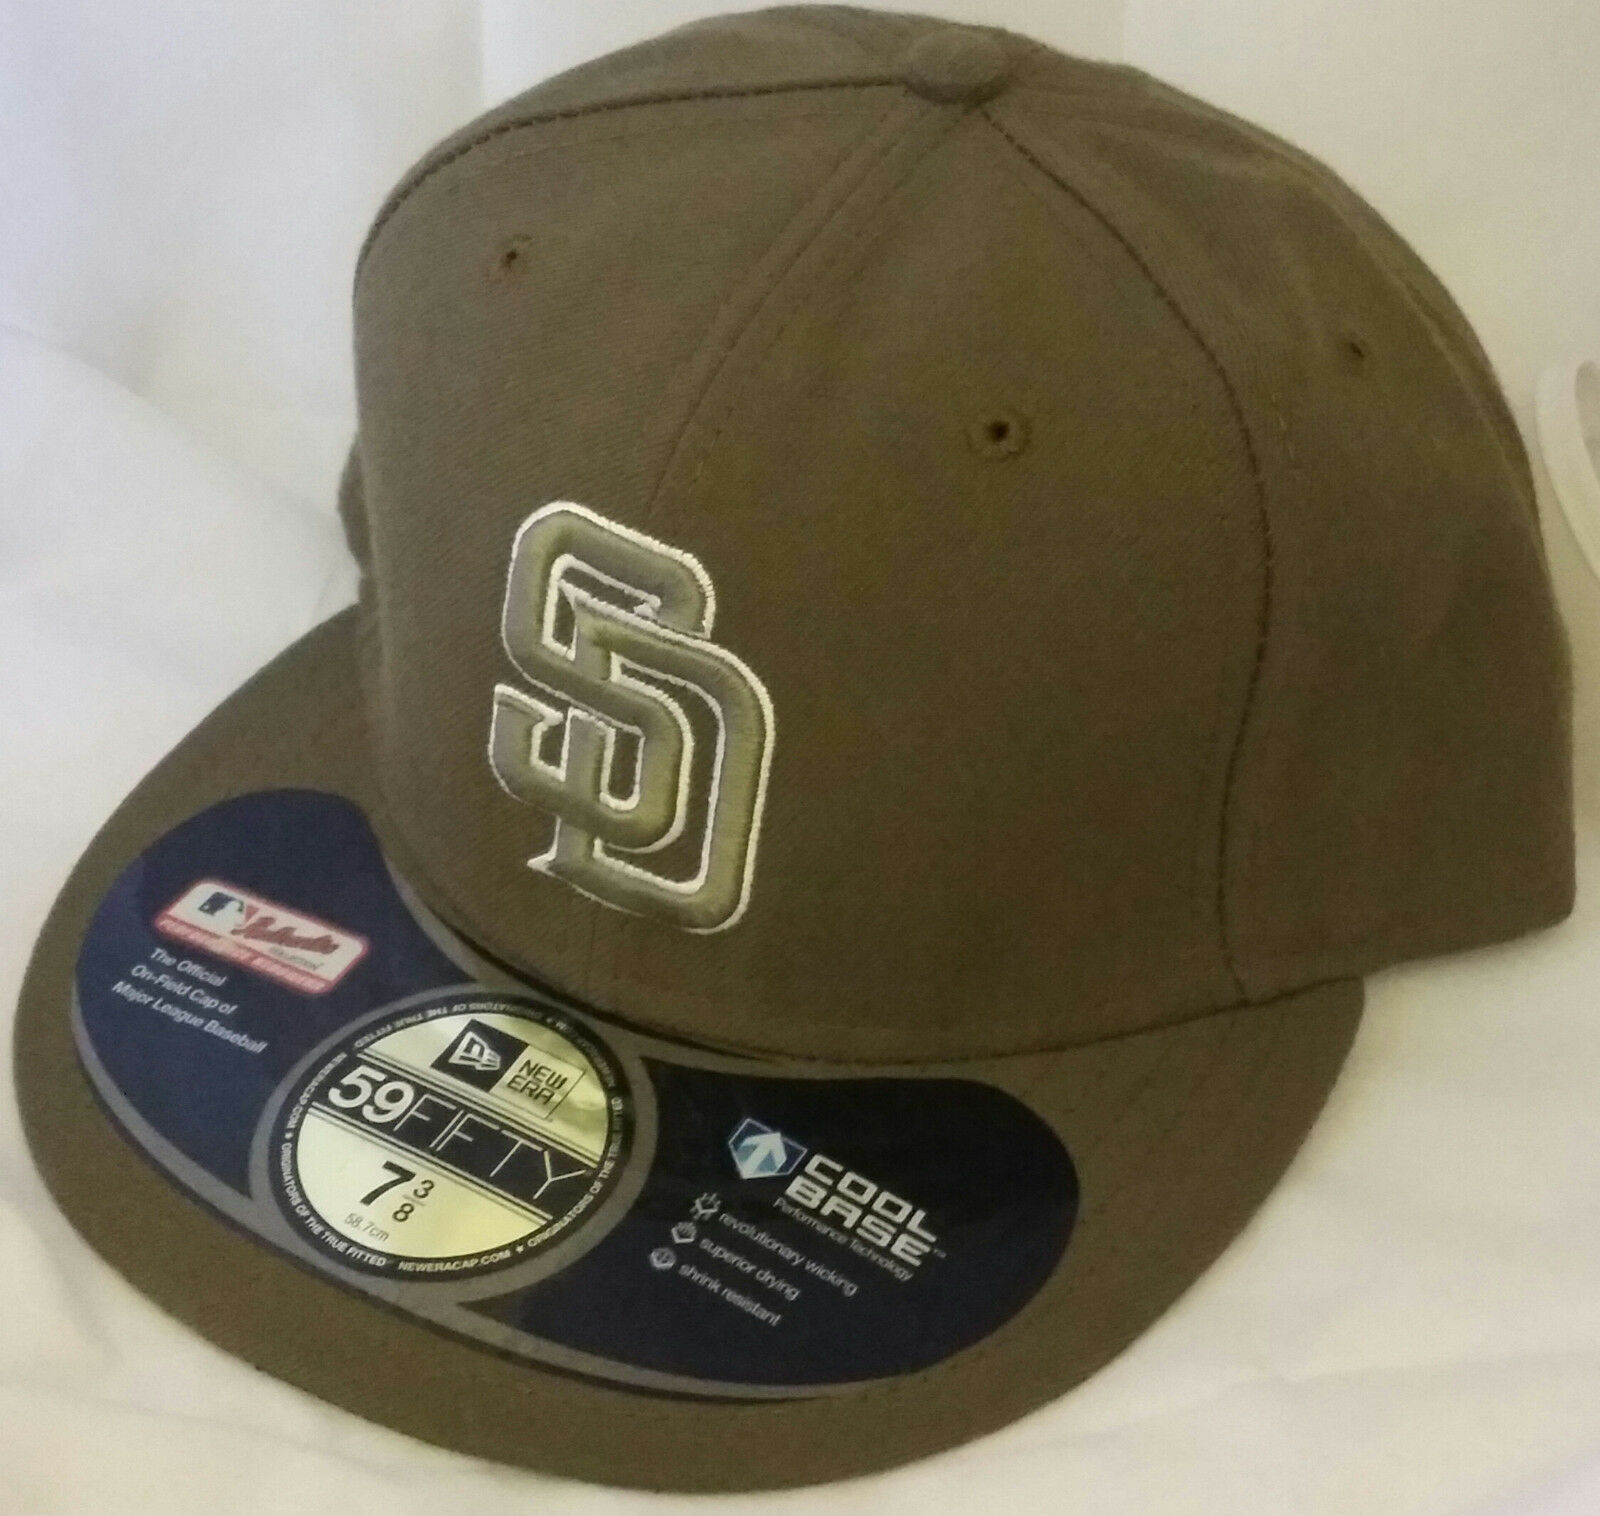 online store fa3f0 fbb57 NWT NEW ERA San Diego PADRES CA SD 59FIFTY size fitted baseball cap hat mlb  1 of 3 ...